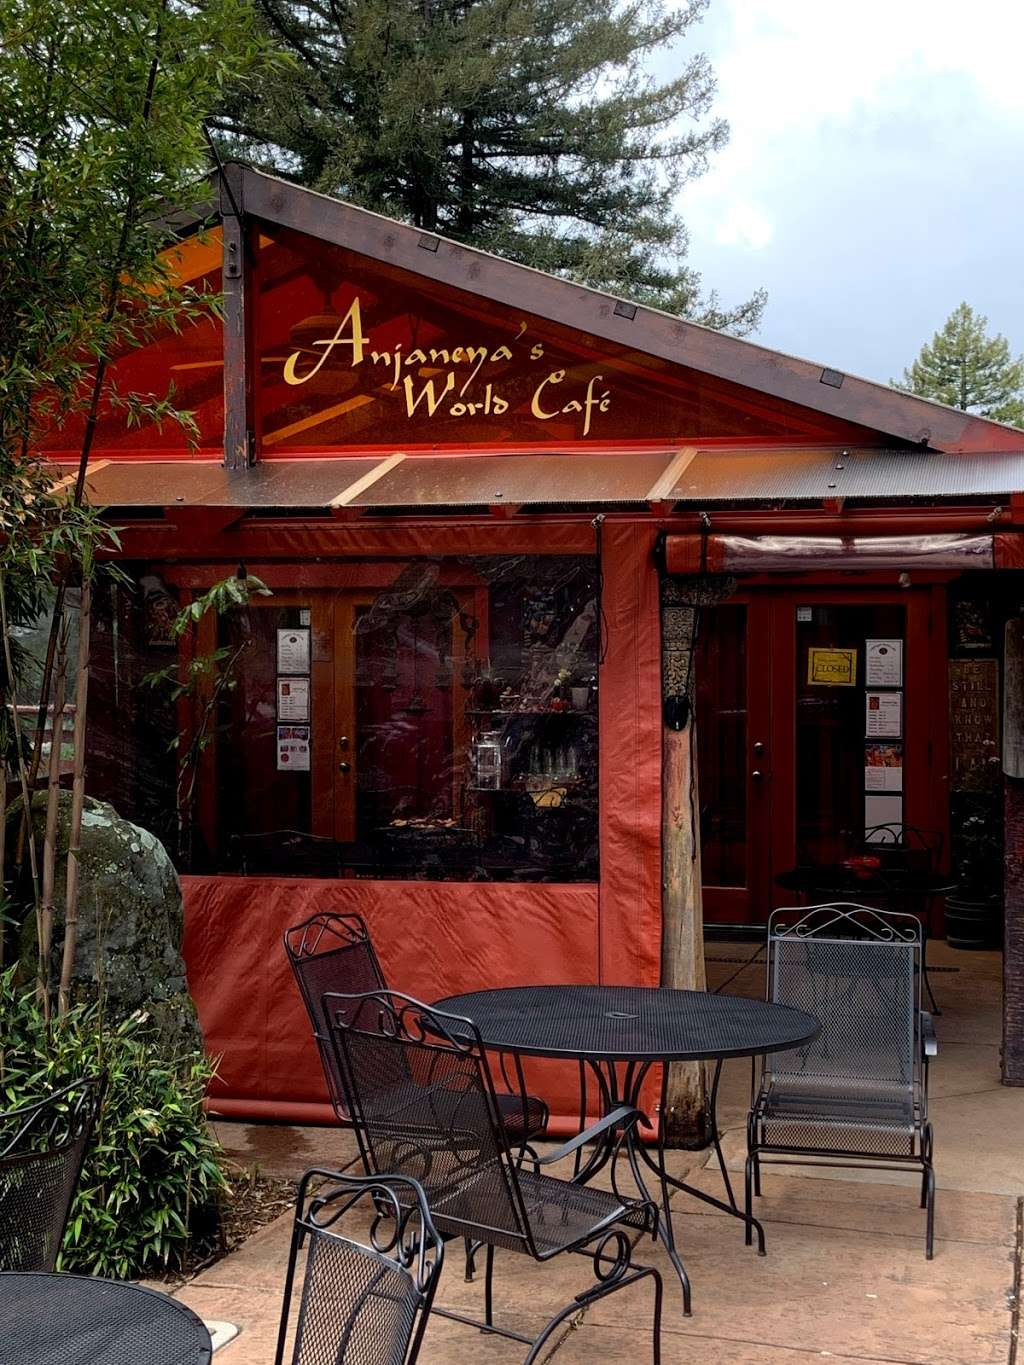 Anjaneyas World Cafe - cafe  | Photo 1 of 6 | Address: Unnamed Road, Watsonville, CA 95076, USA